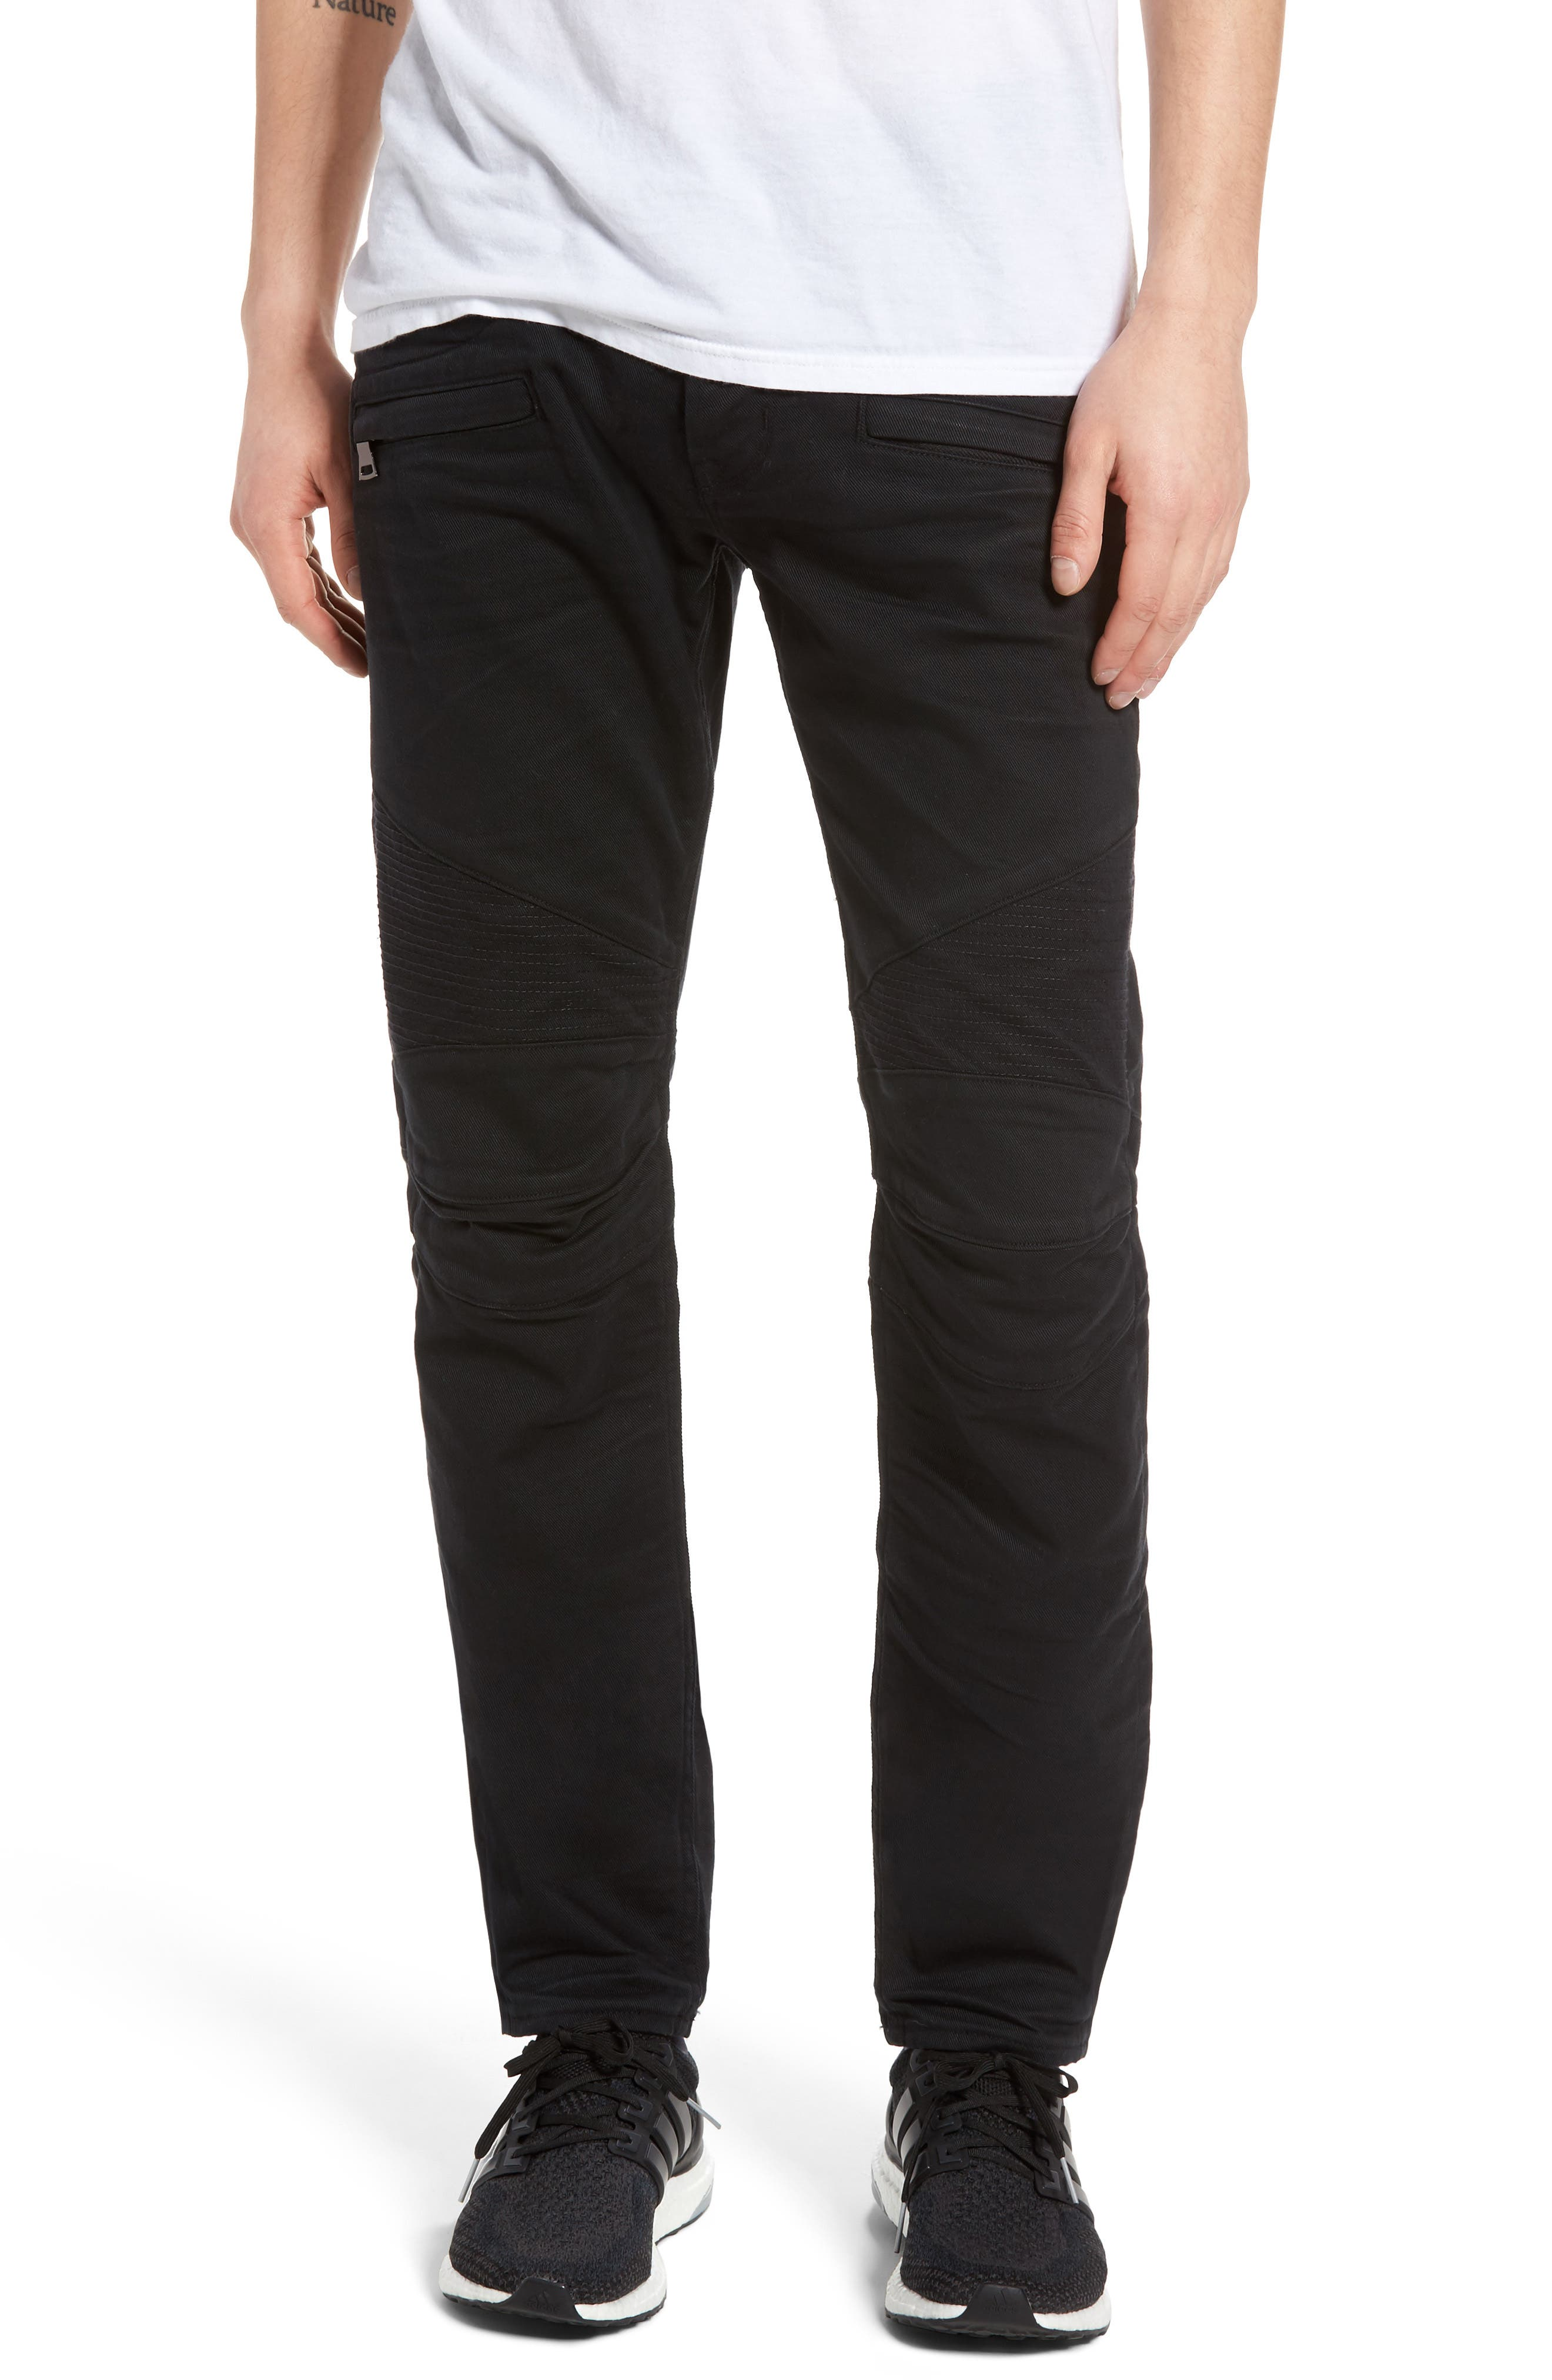 Blinder Biker Skinny Fit Jeans,                         Main,                         color, BLACKLIGHT